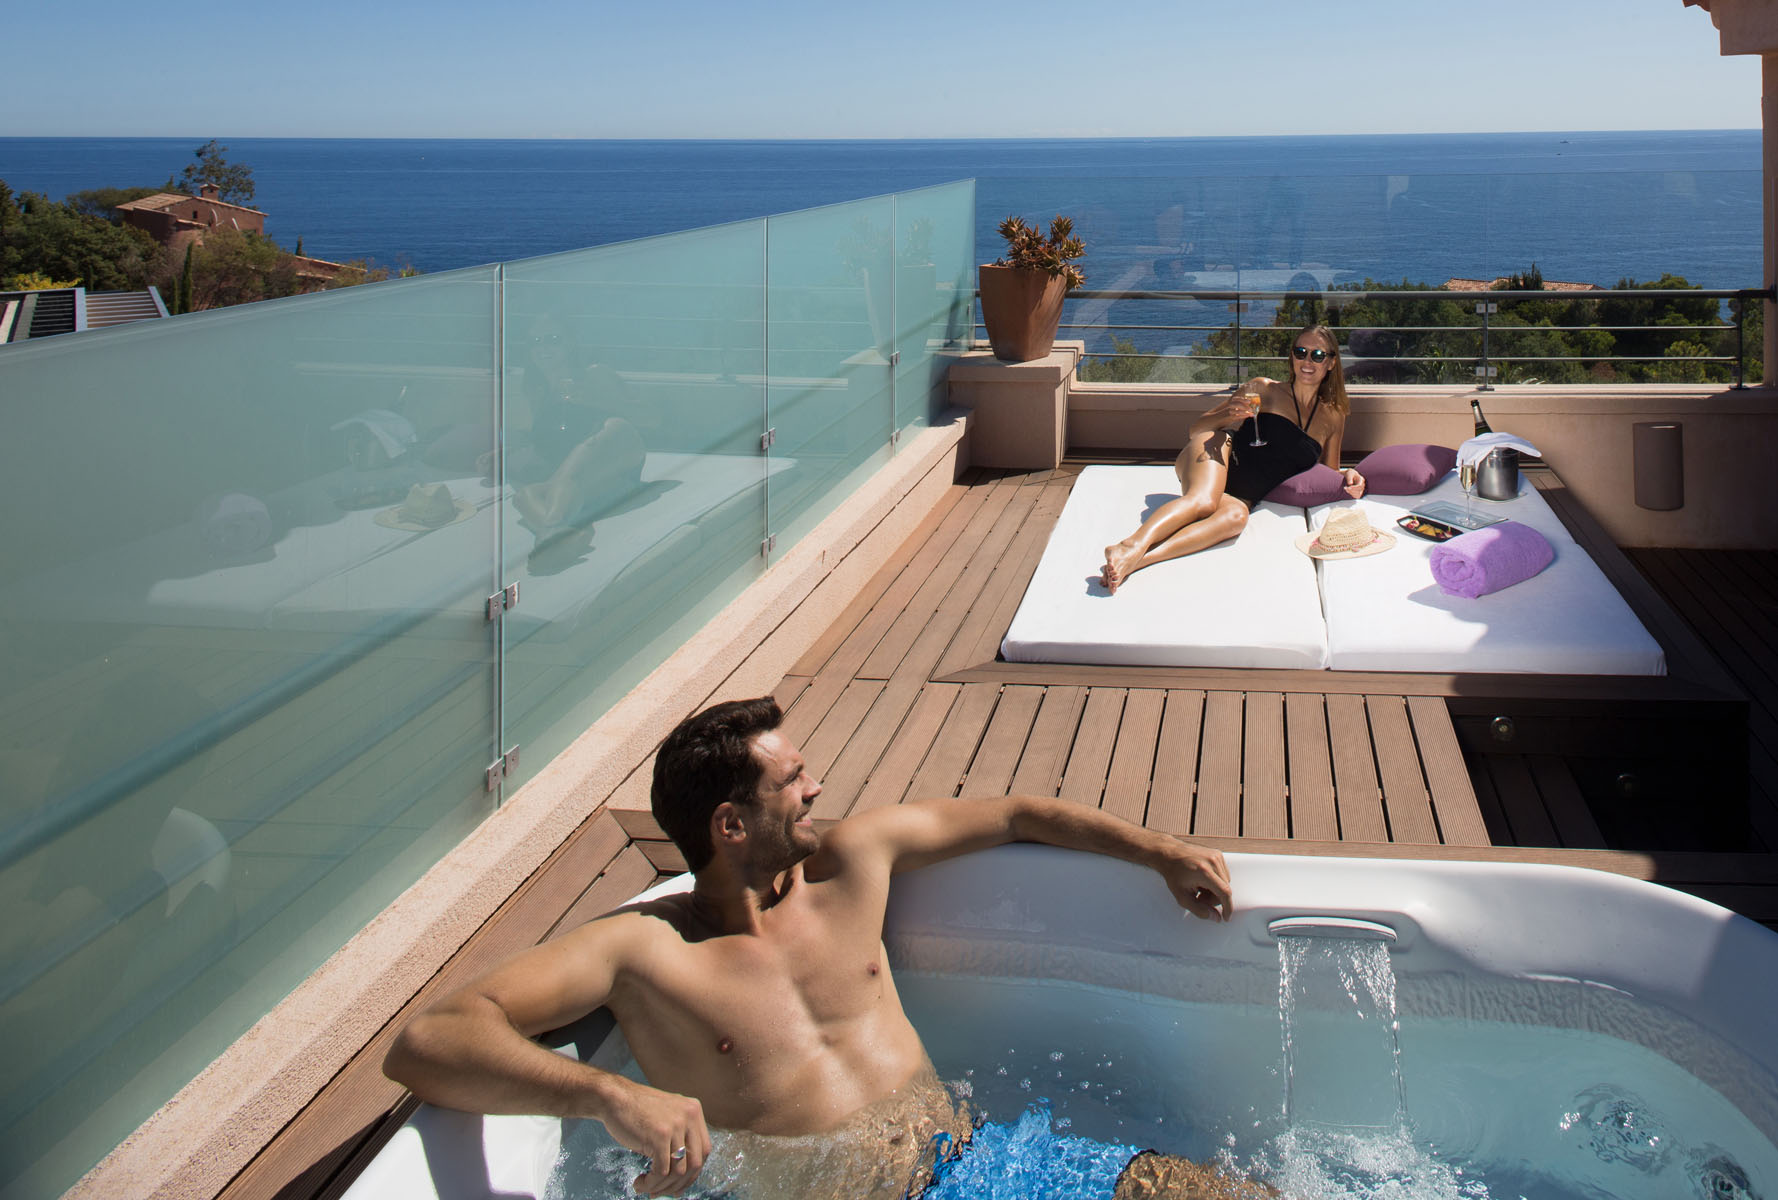 Tiara Yaktsa Cote d'Azur | French Riviera hotel with jacuzzi in room